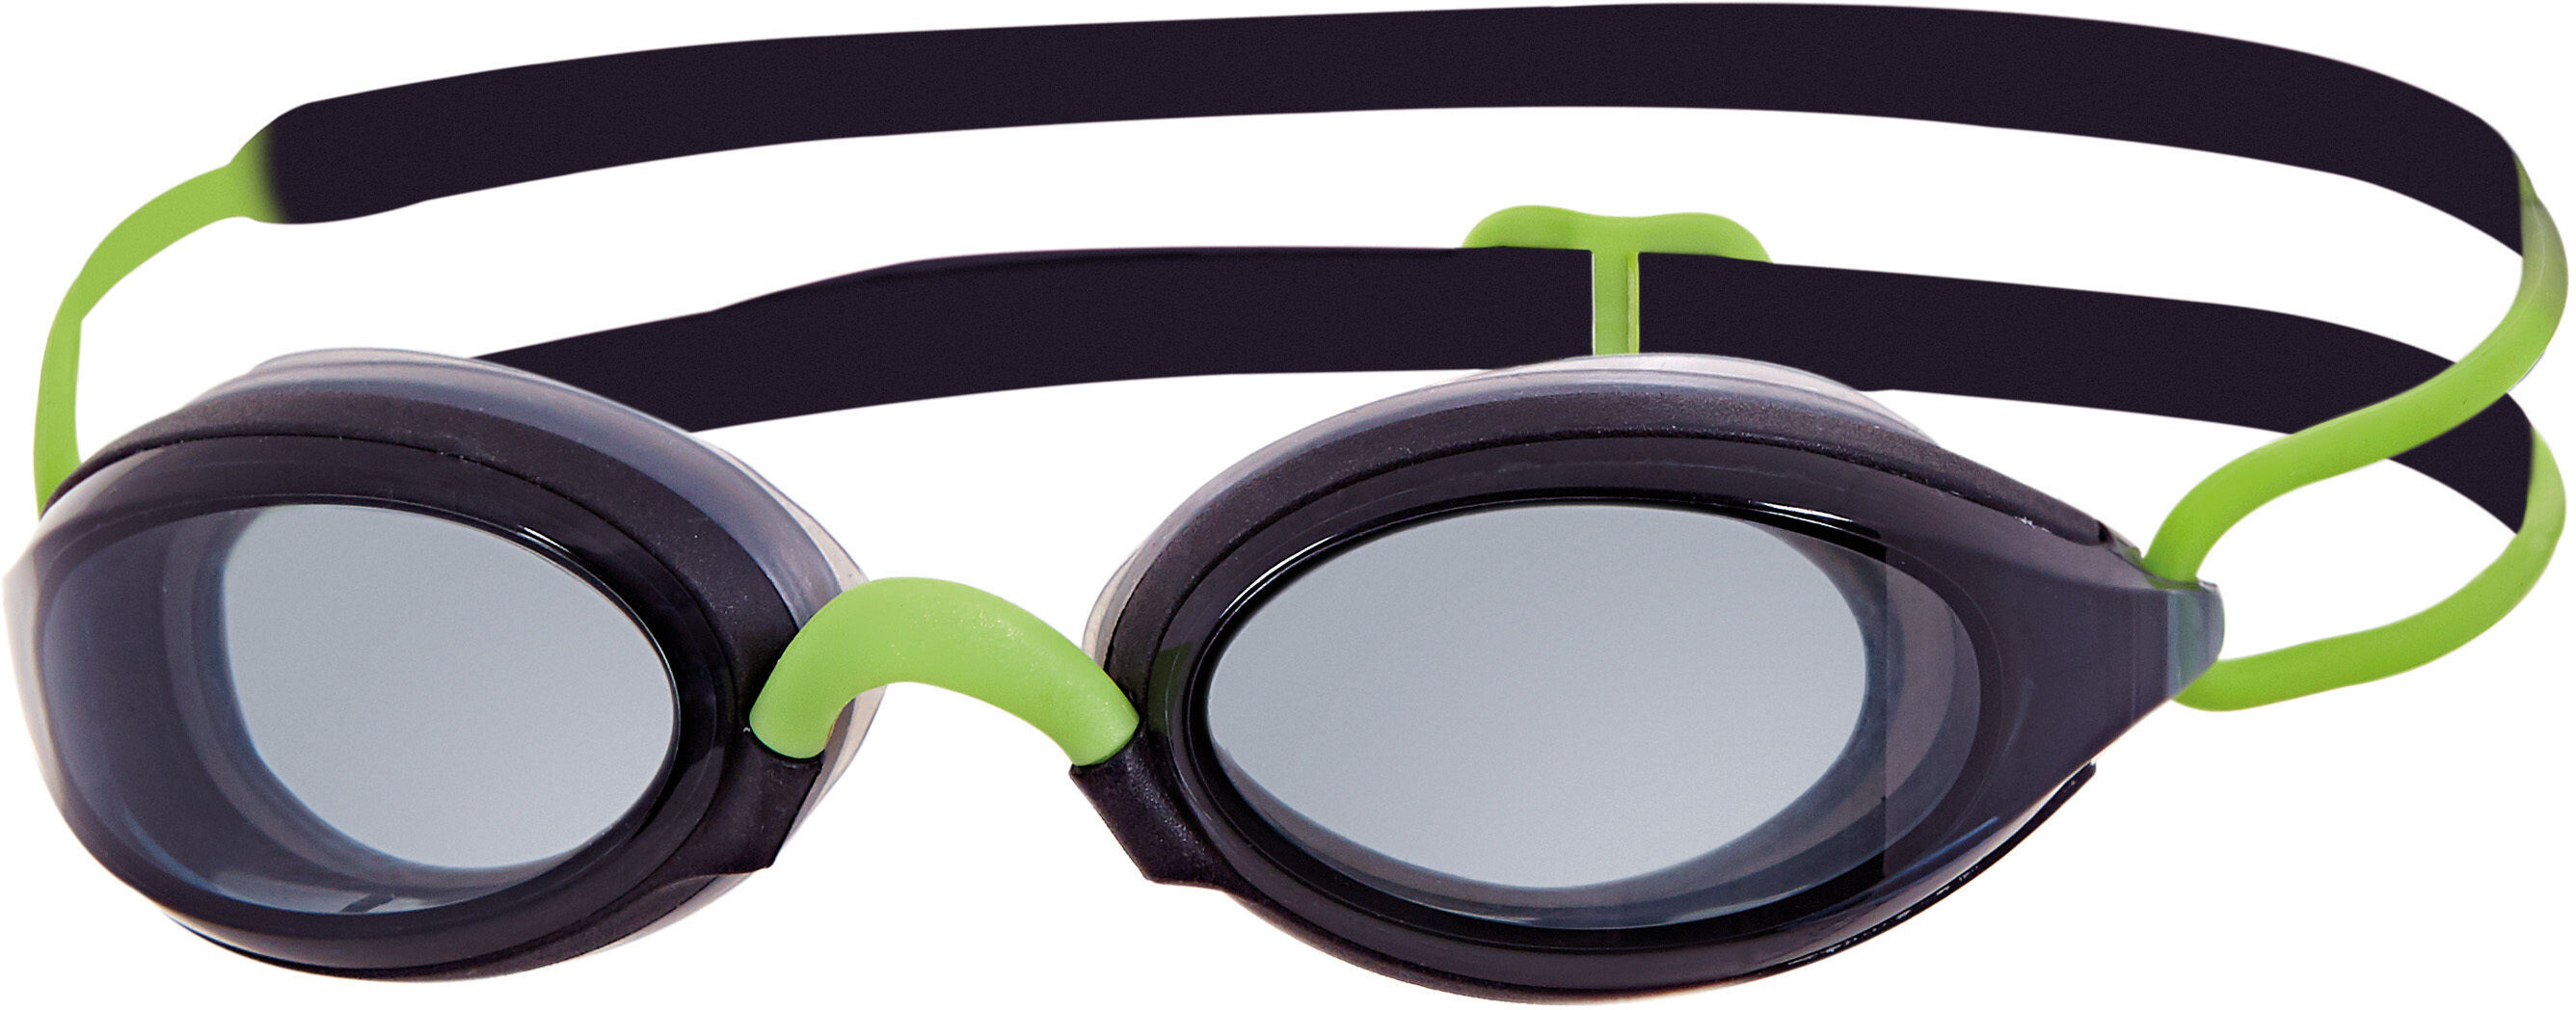 3b678d7654 Zoggs Fusion Air Goggle Women green black at Bikester.co.uk